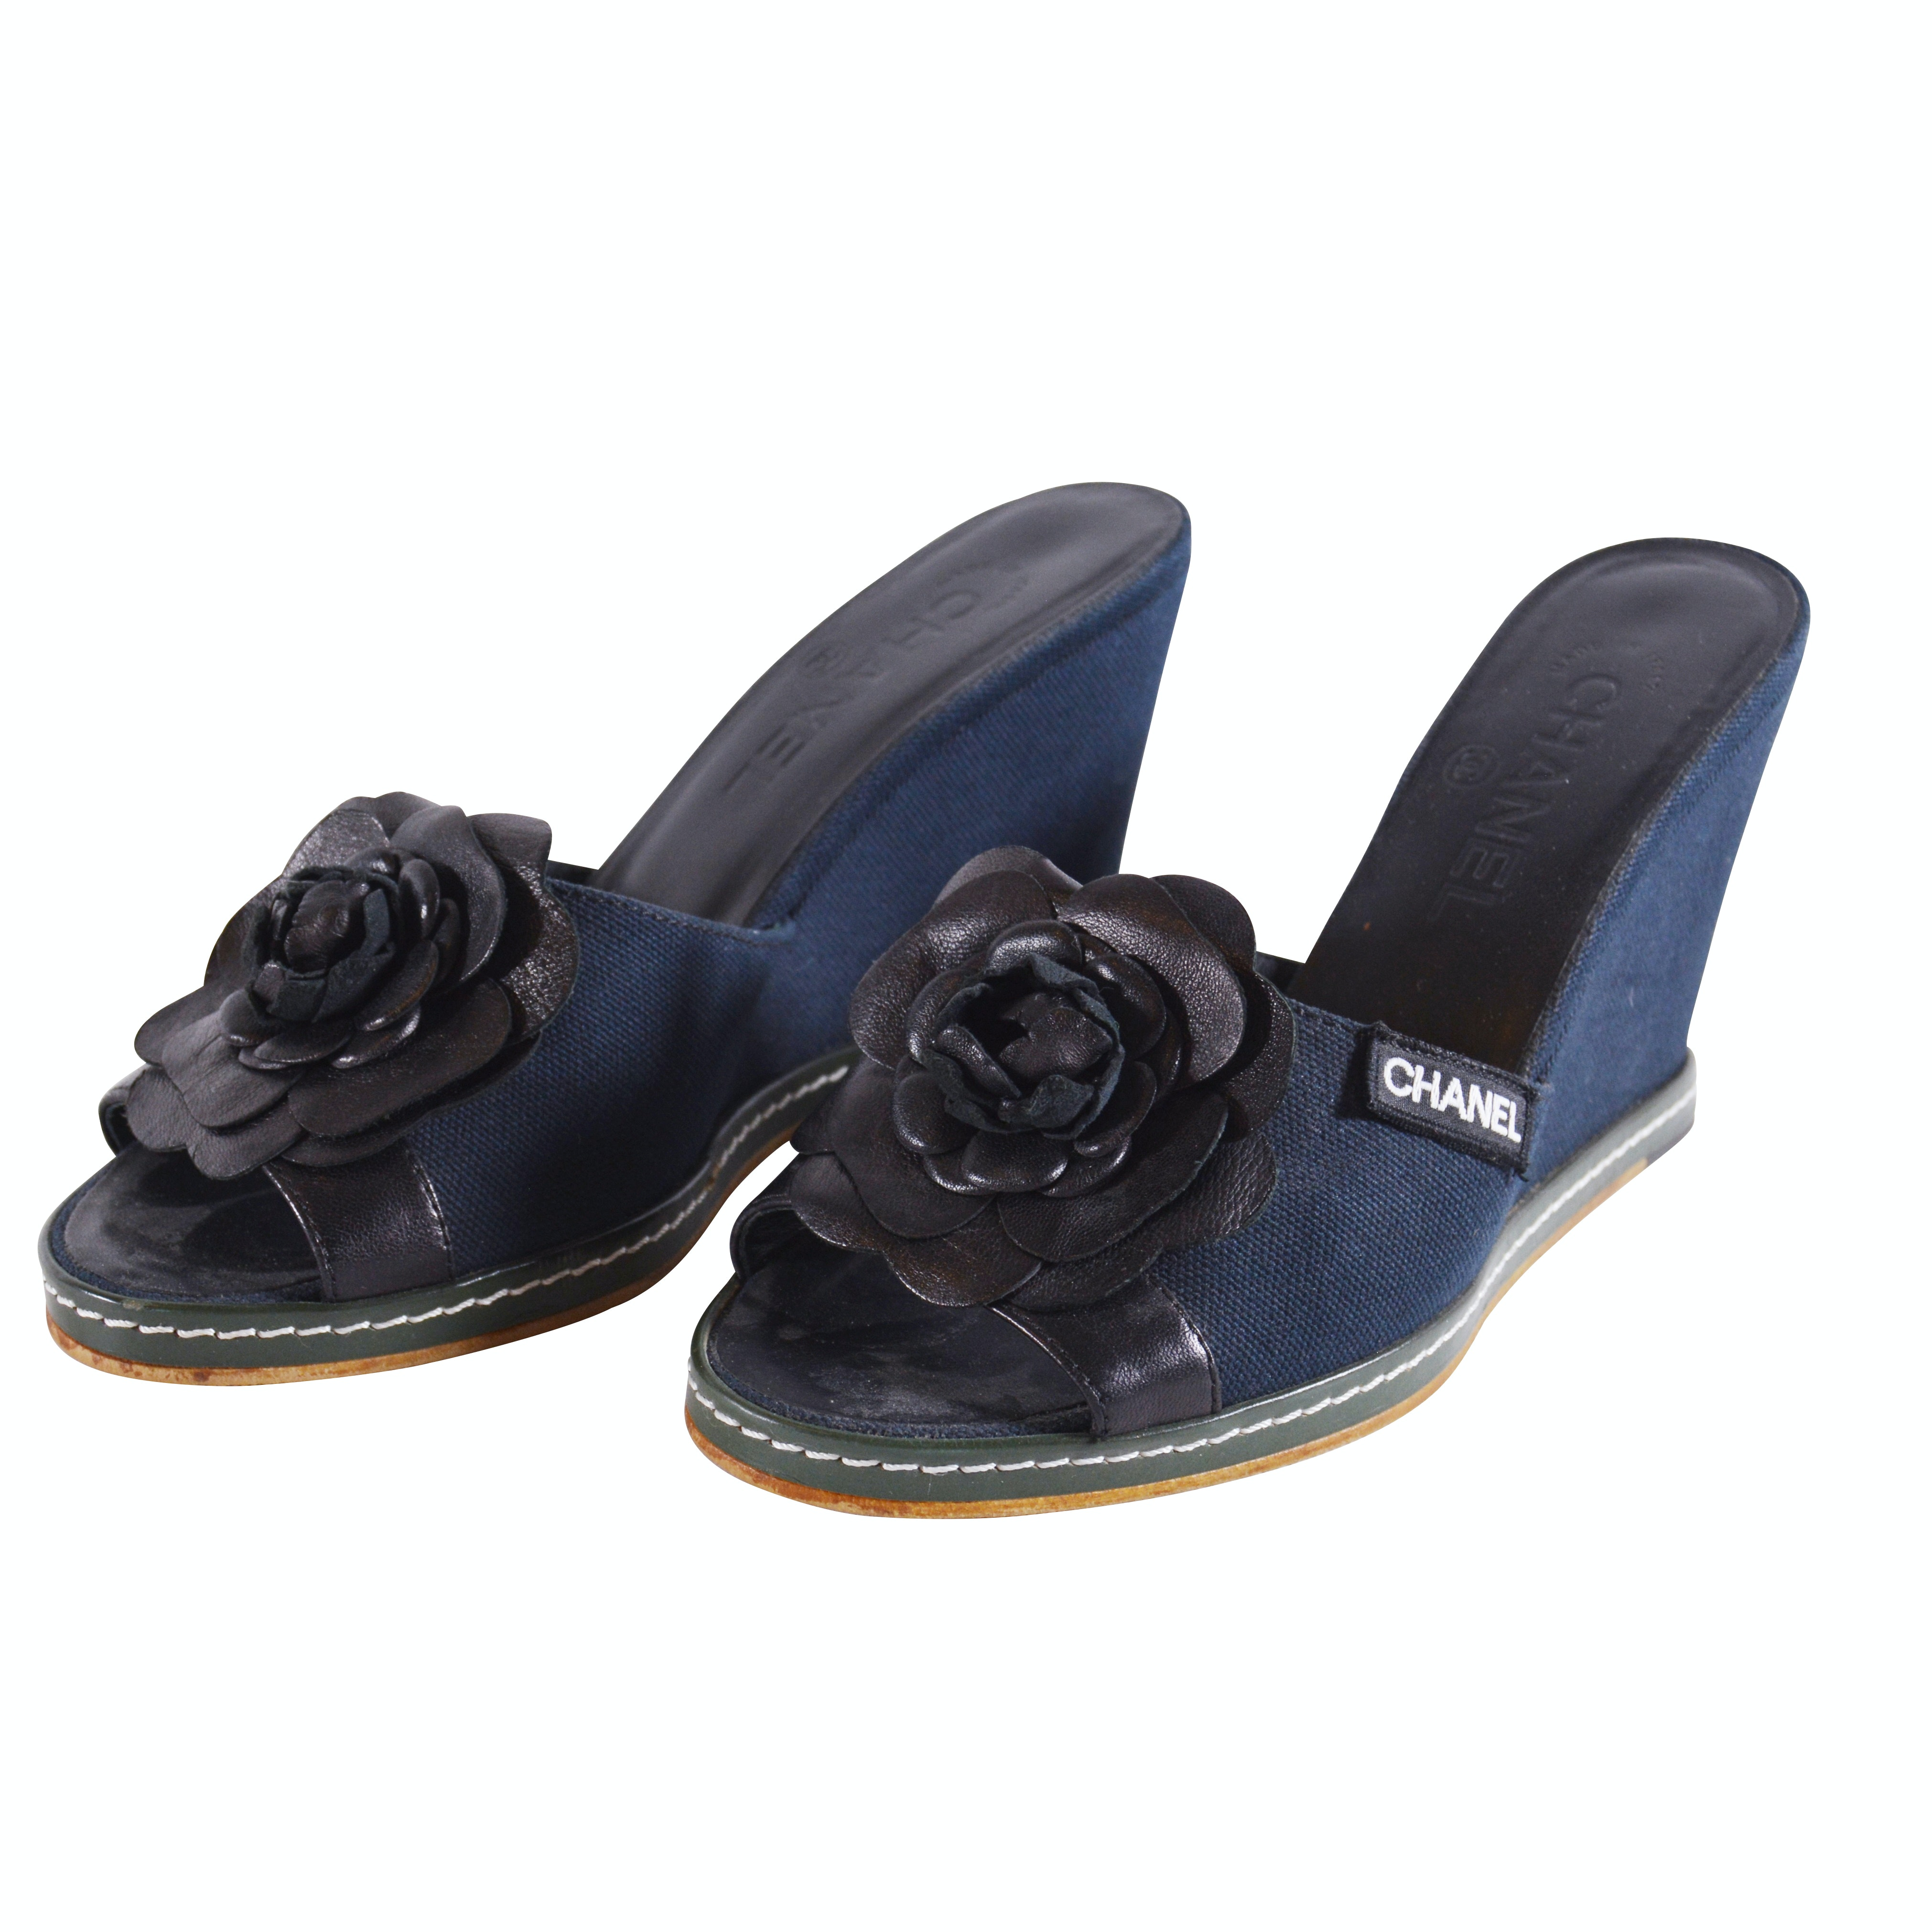 Chanel Navy Canvas and Black Leather Camelia Wedges